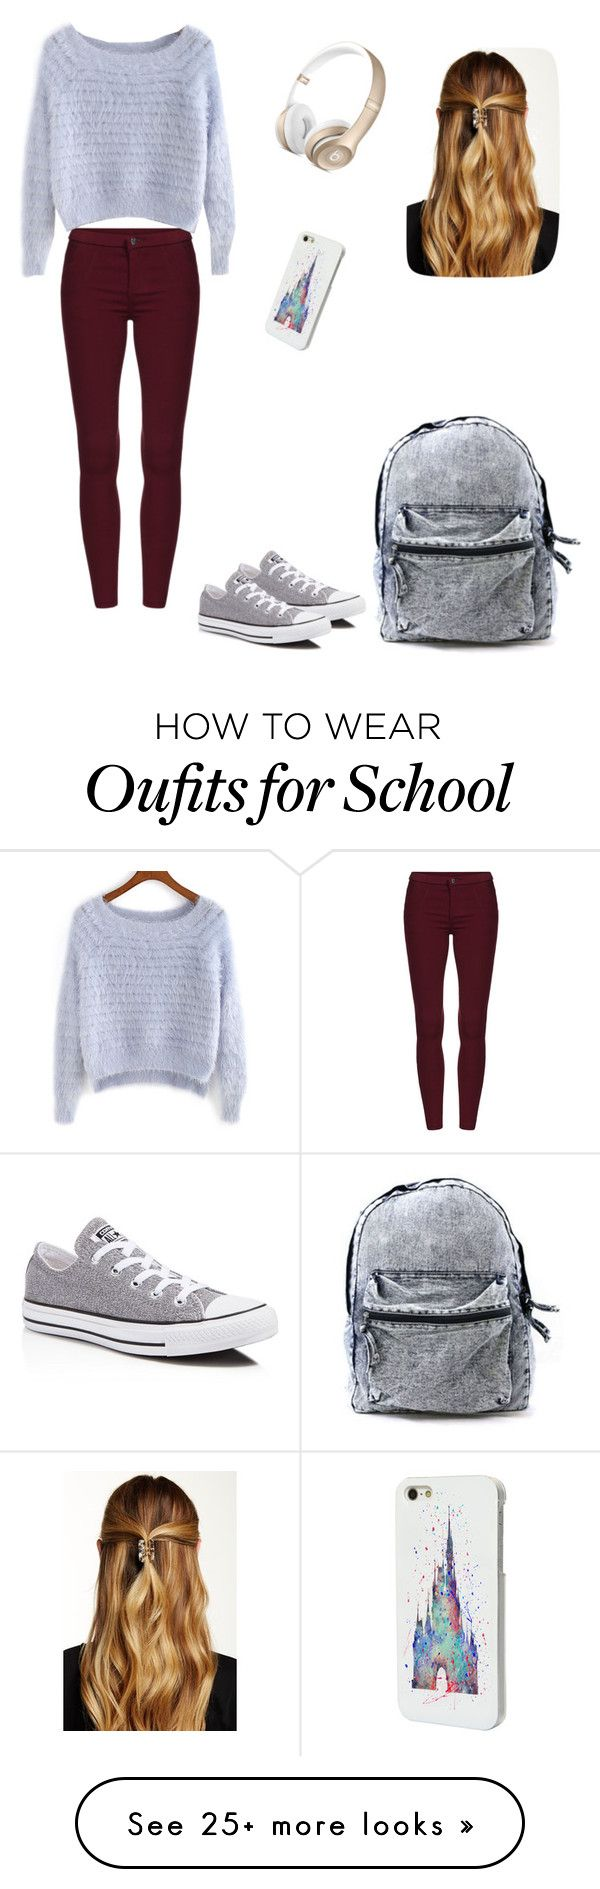 """""""School look"""" by fashiongirlprox on Polyvore featuring Converse, Disney and Natasha Accessories"""